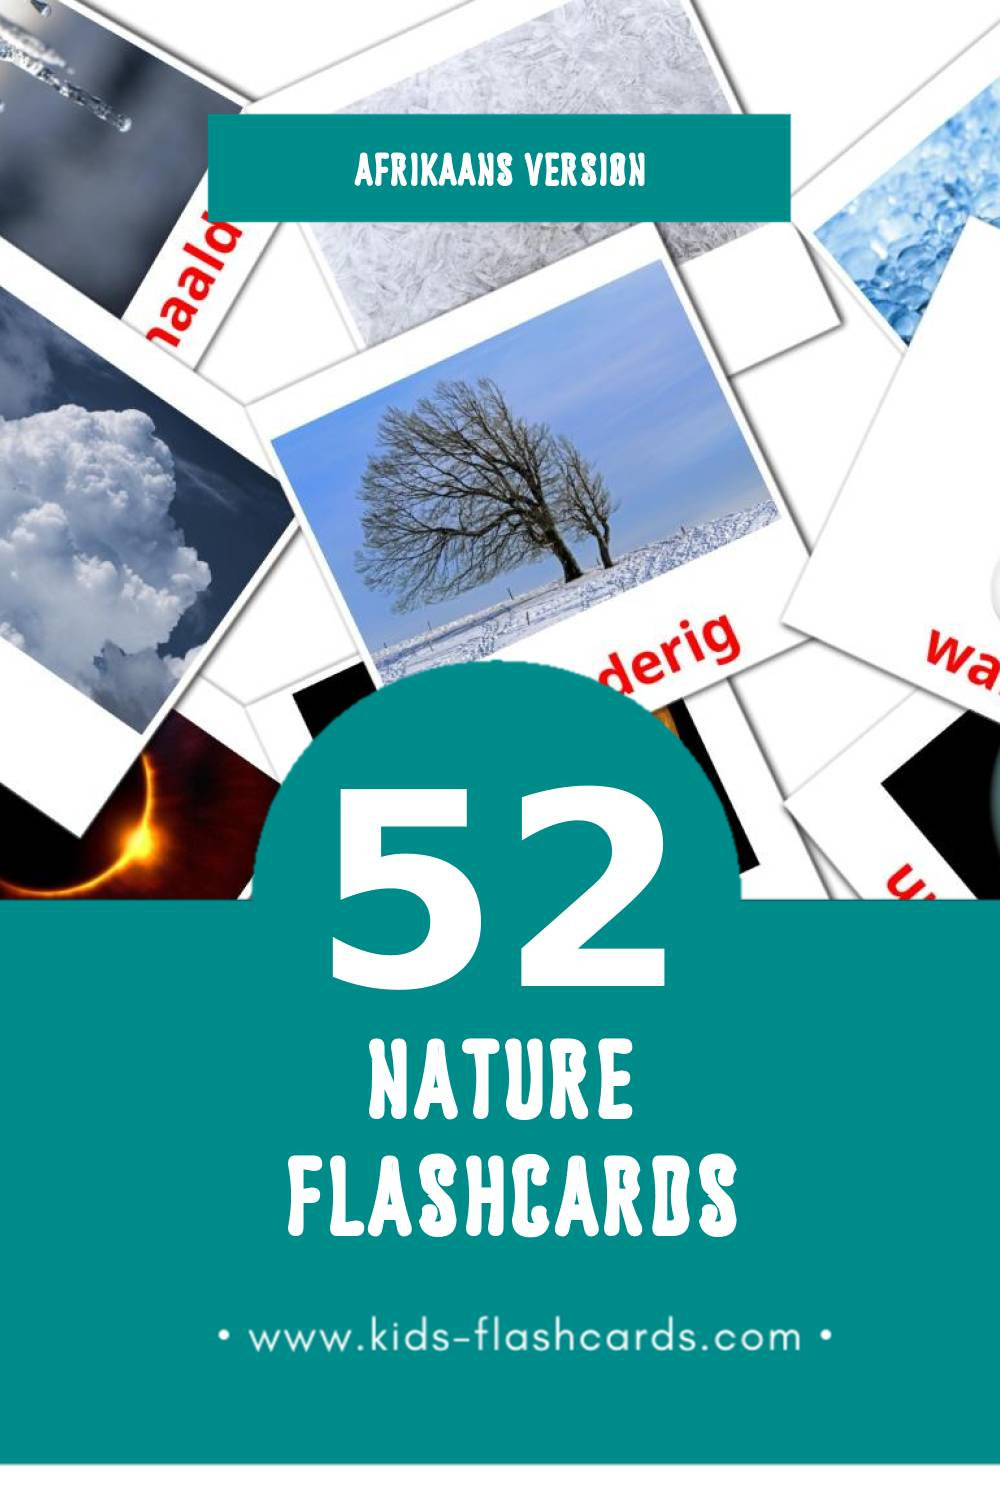 Visual Natureza  Flashcards for Toddlers (31 cards in Afrikaans)